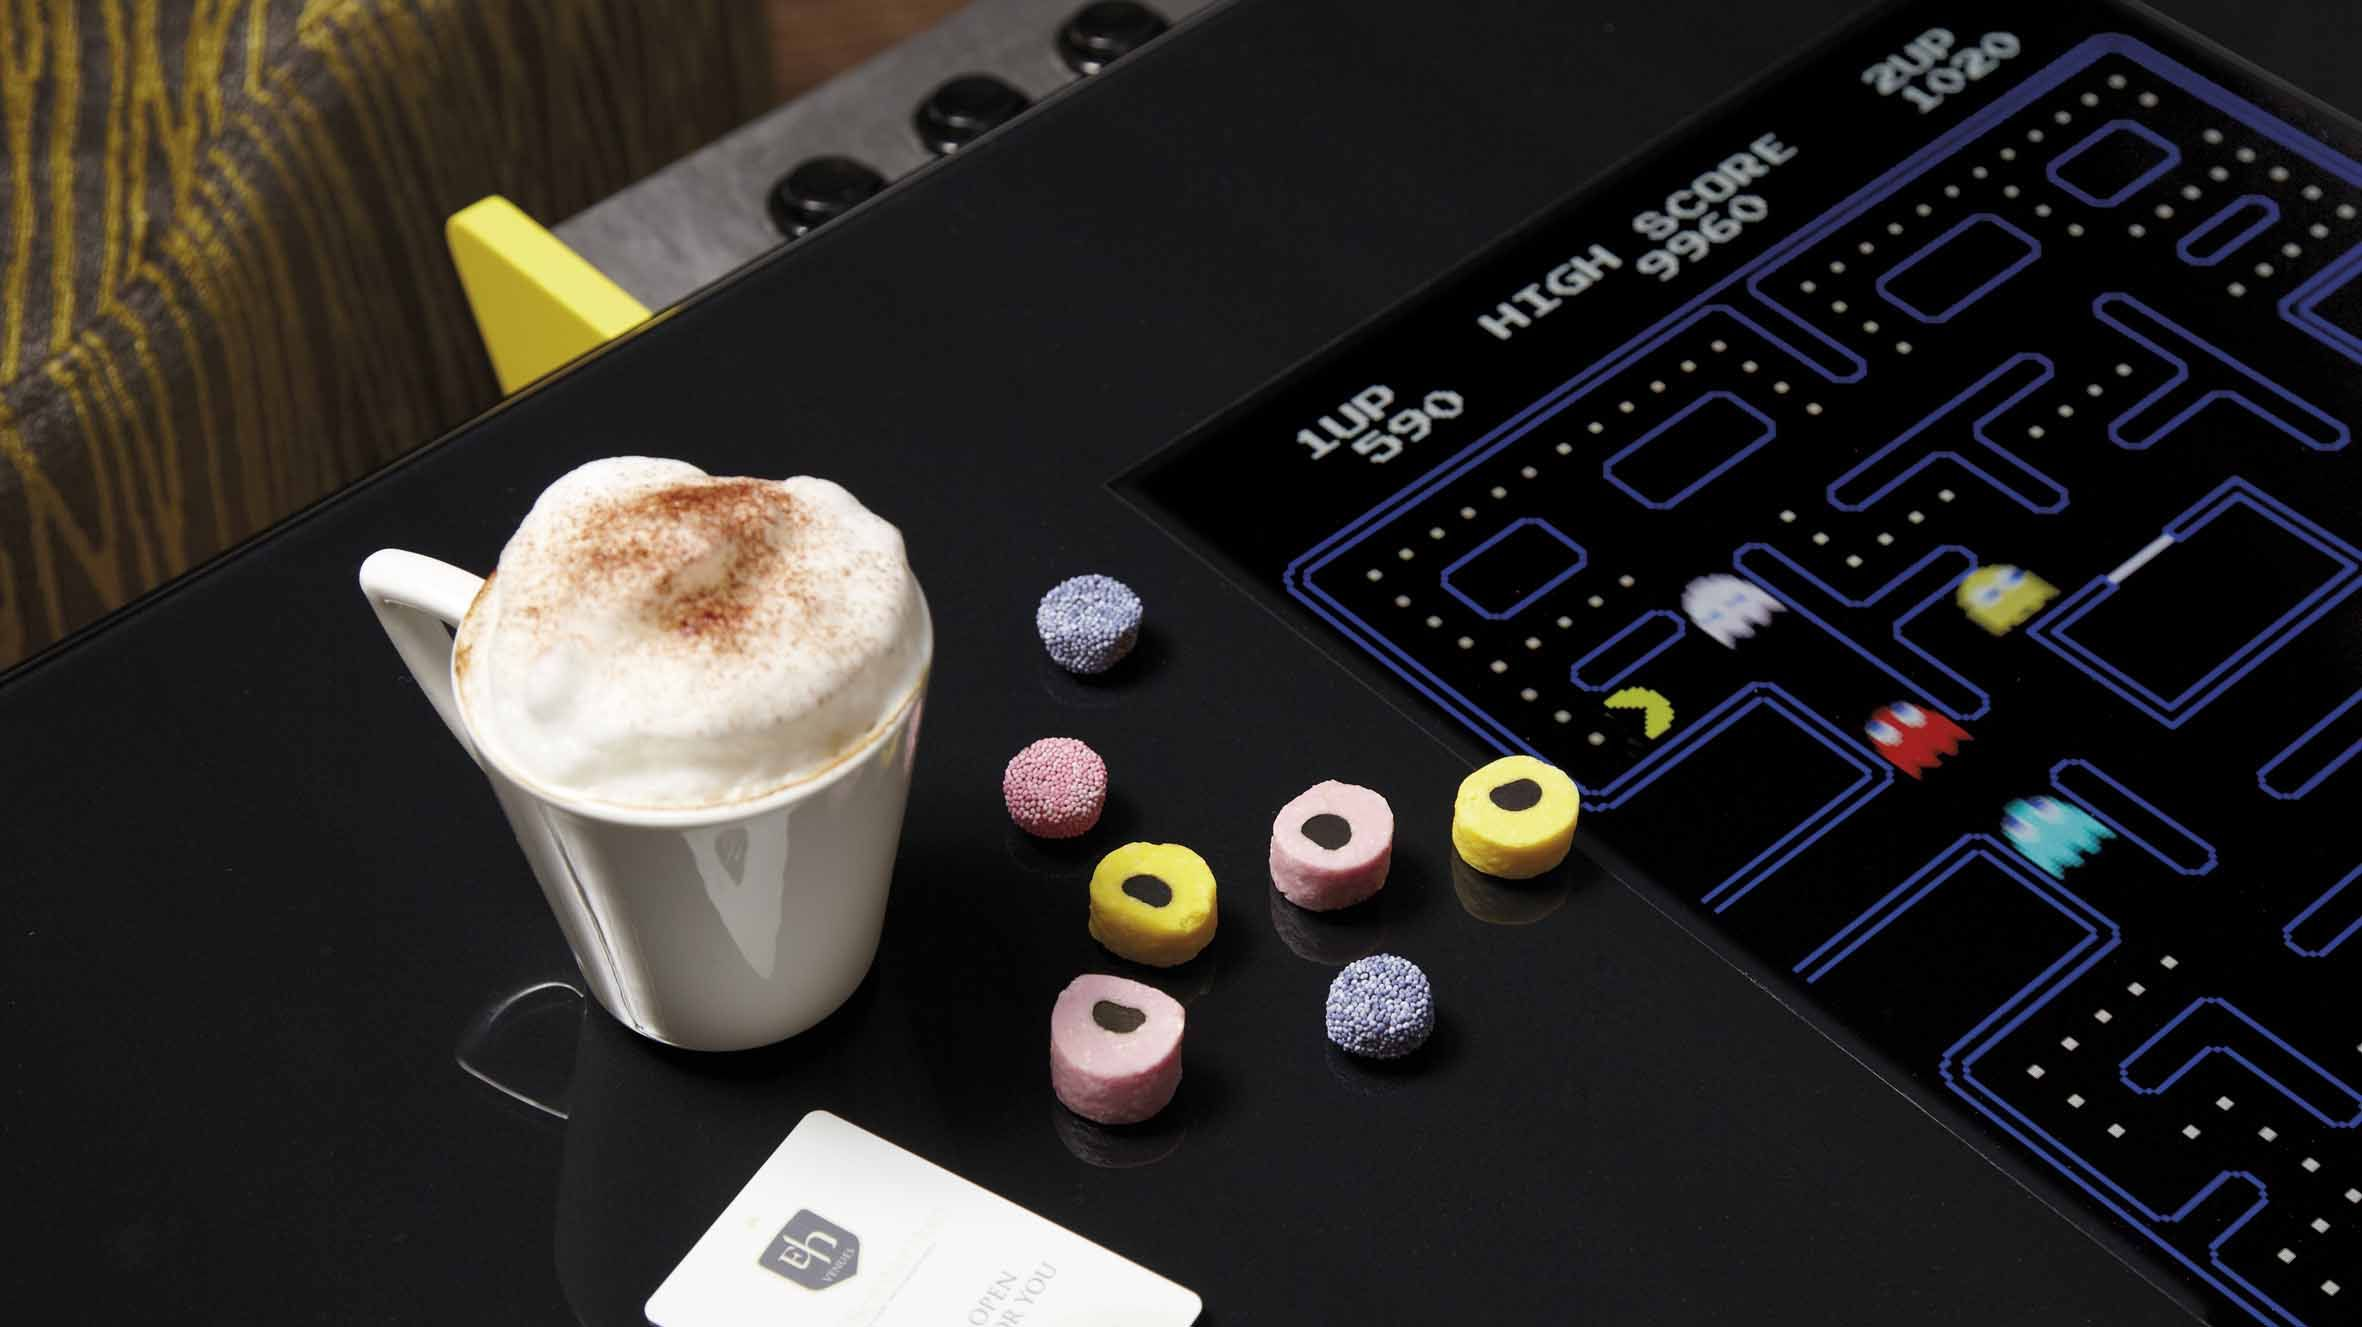 A break with a game of Pac-Man and a coffee.